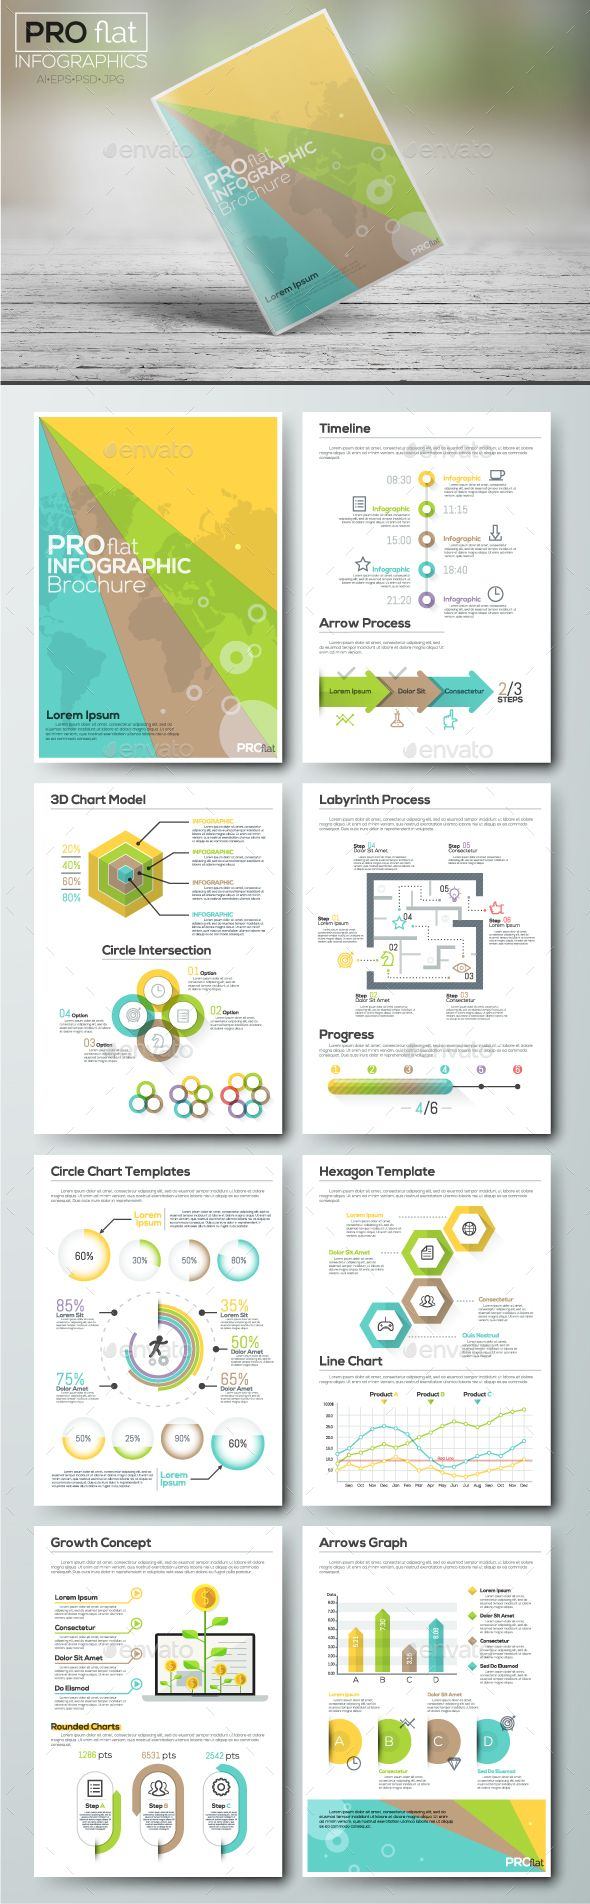 Pro Flat Infographic Brochure. Set 5 — Photoshop PSD #creative #web • Available here → https://graphicriver.net/item/pro-flat-infographic-brochure-set-5/16413881?ref=pxcr